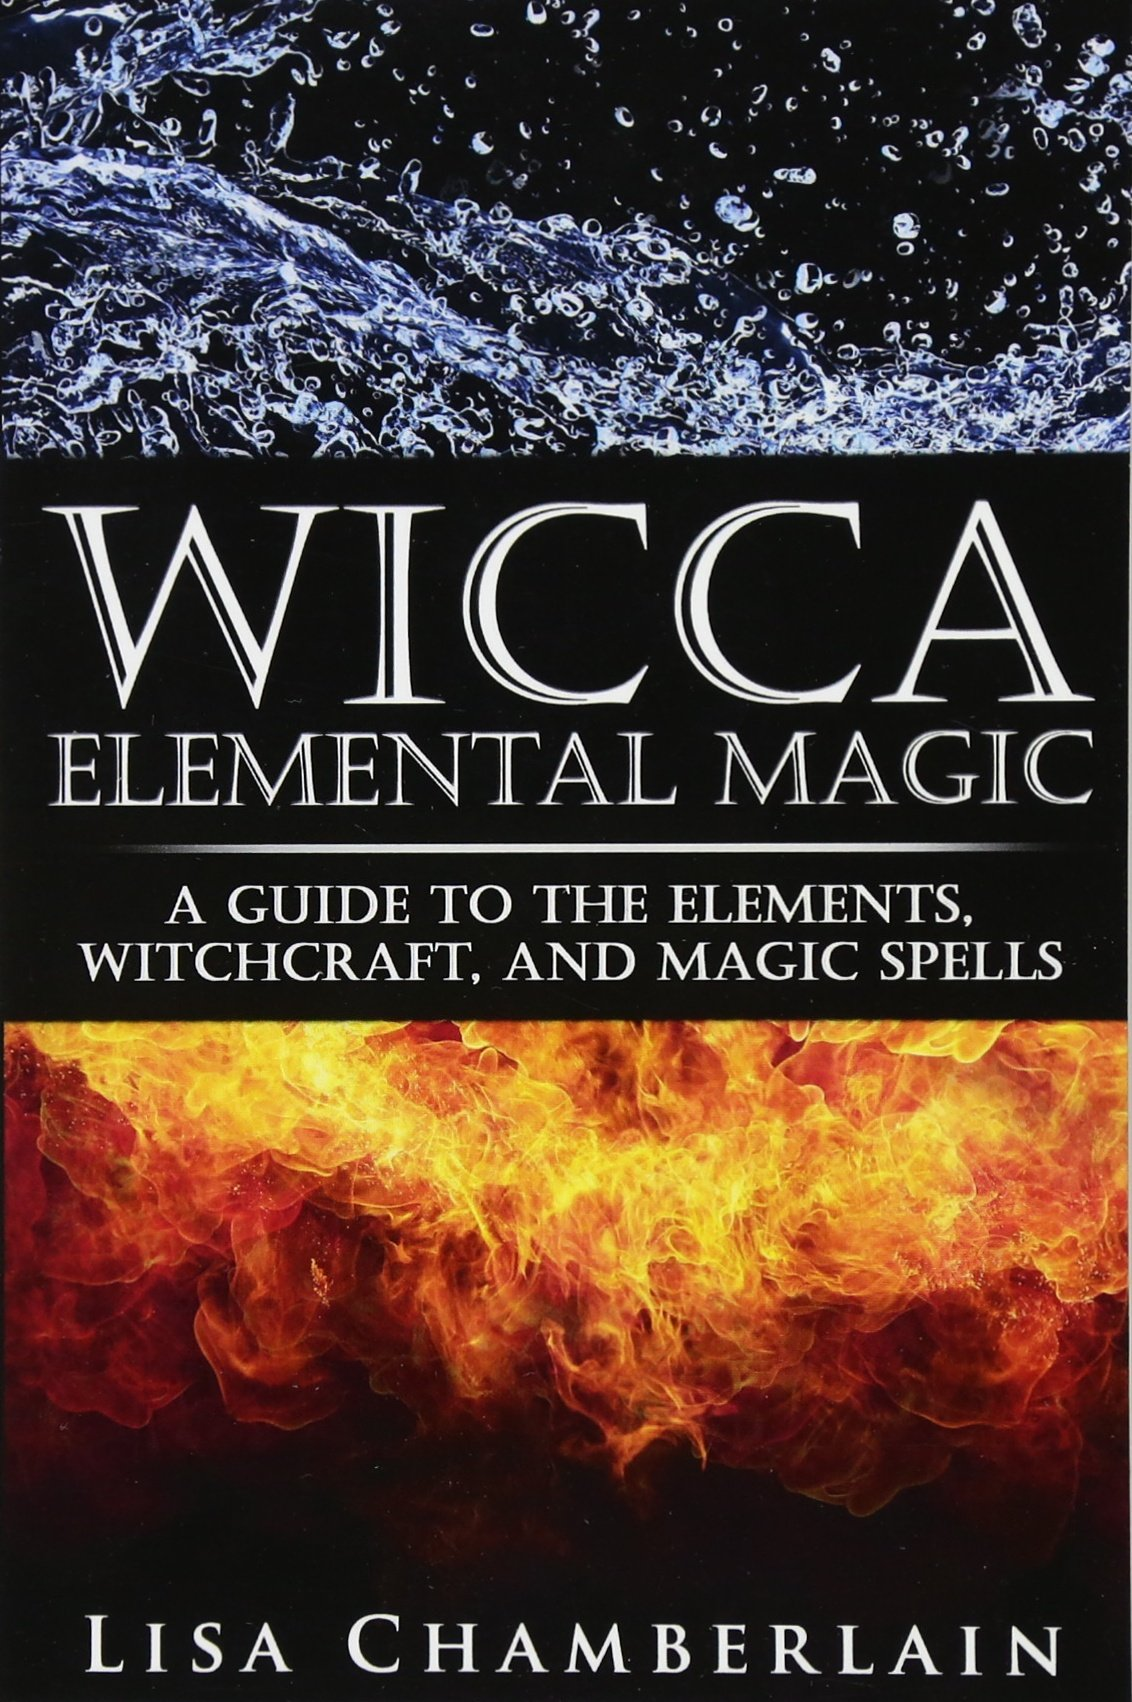 Wicca elemental magic a guide to the elements witchcraft and wicca elemental magic a guide to the elements witchcraft and magic spells lisa chamberlain 9781503086418 amazon books fandeluxe Gallery